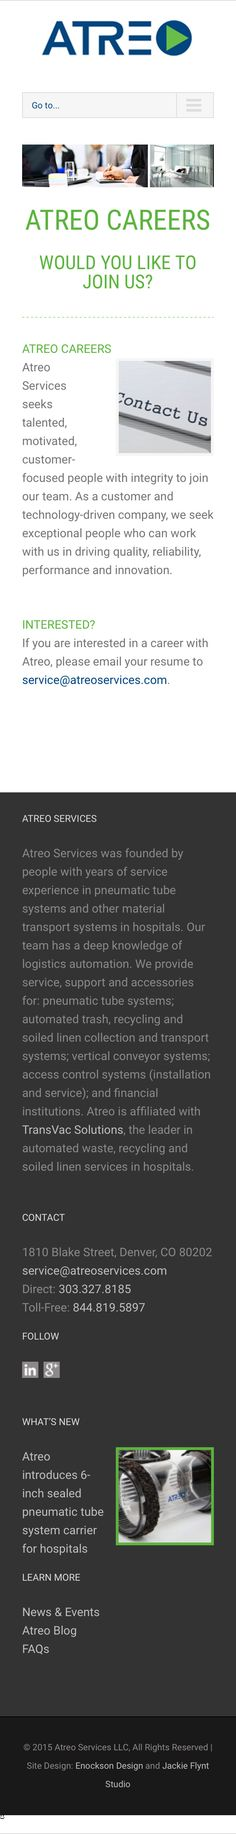 Atreo Services Google+ business page Google+ profile setup and - resume services denver